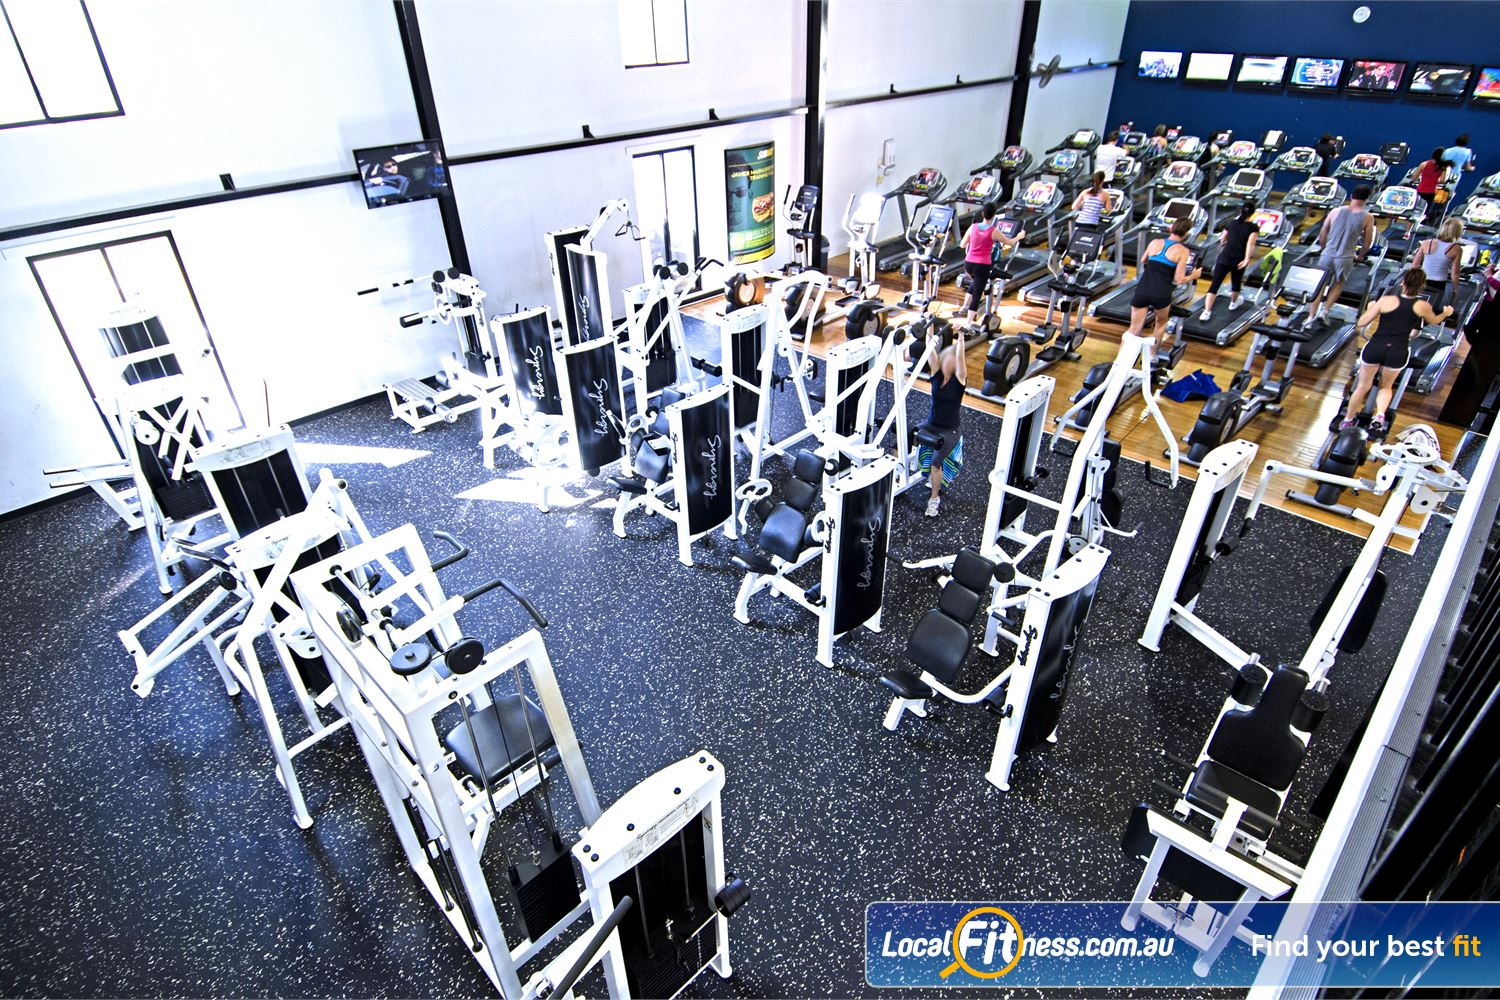 Goodlife Health Clubs Graceville Our Graceville gym was one of the first Goodlife Clubs in Australia.